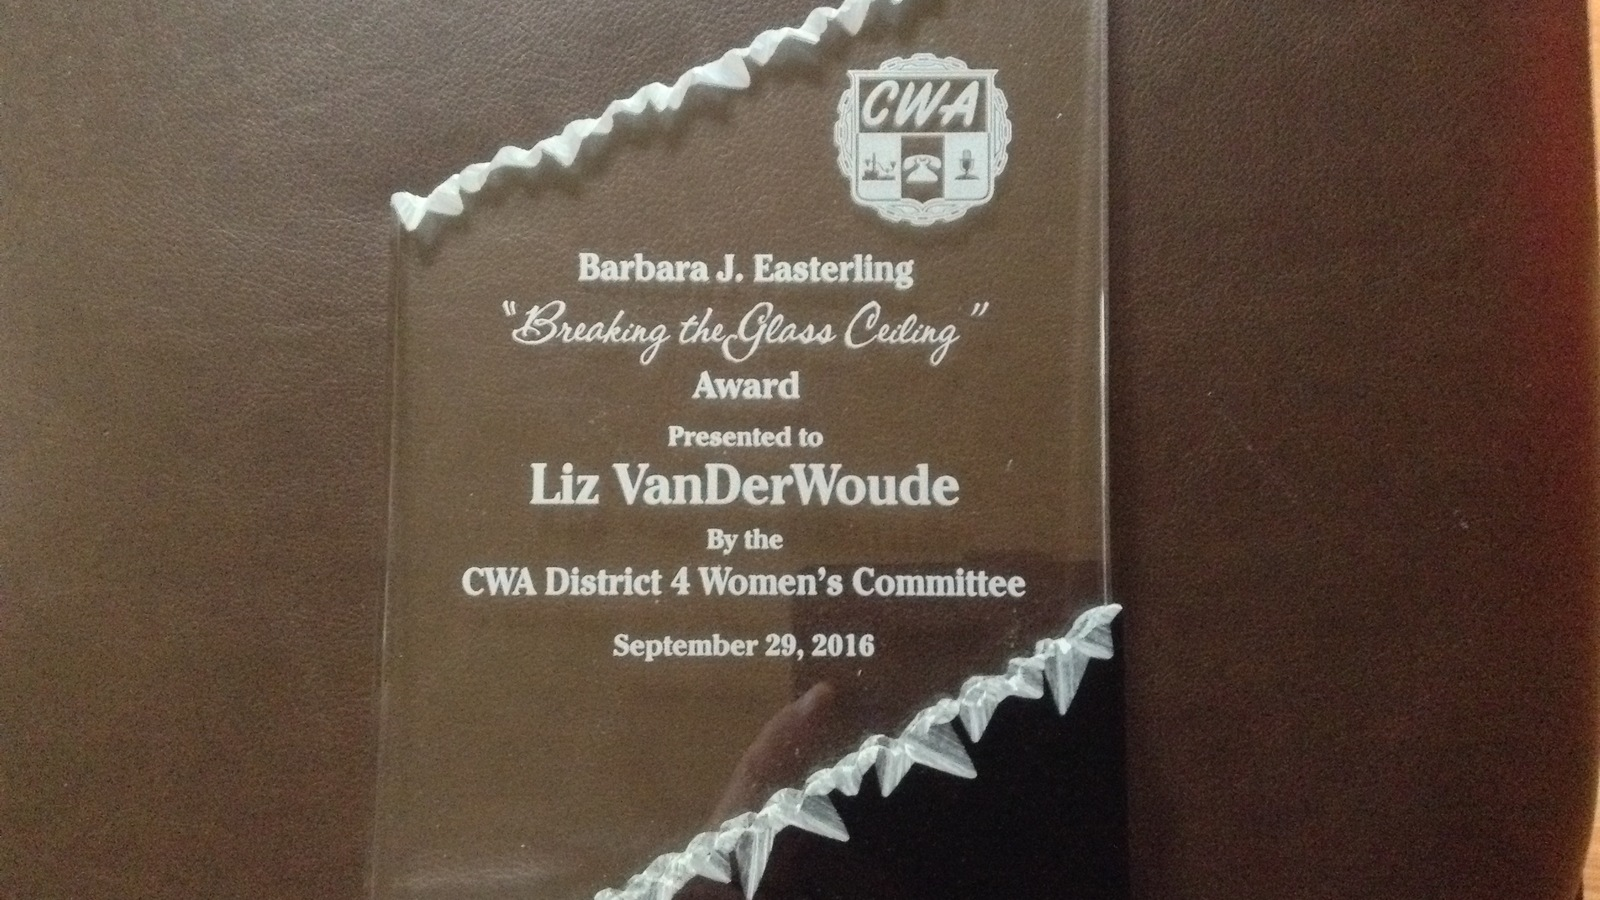 Image in support of: It Is With Great Sadness To Announce Liz VanDerWoude Retired President Of CWA Local 4250/CTU #16 Chicago, Succumbed To Cancer After A Valiant Fight On Sunday, September 13, 2020